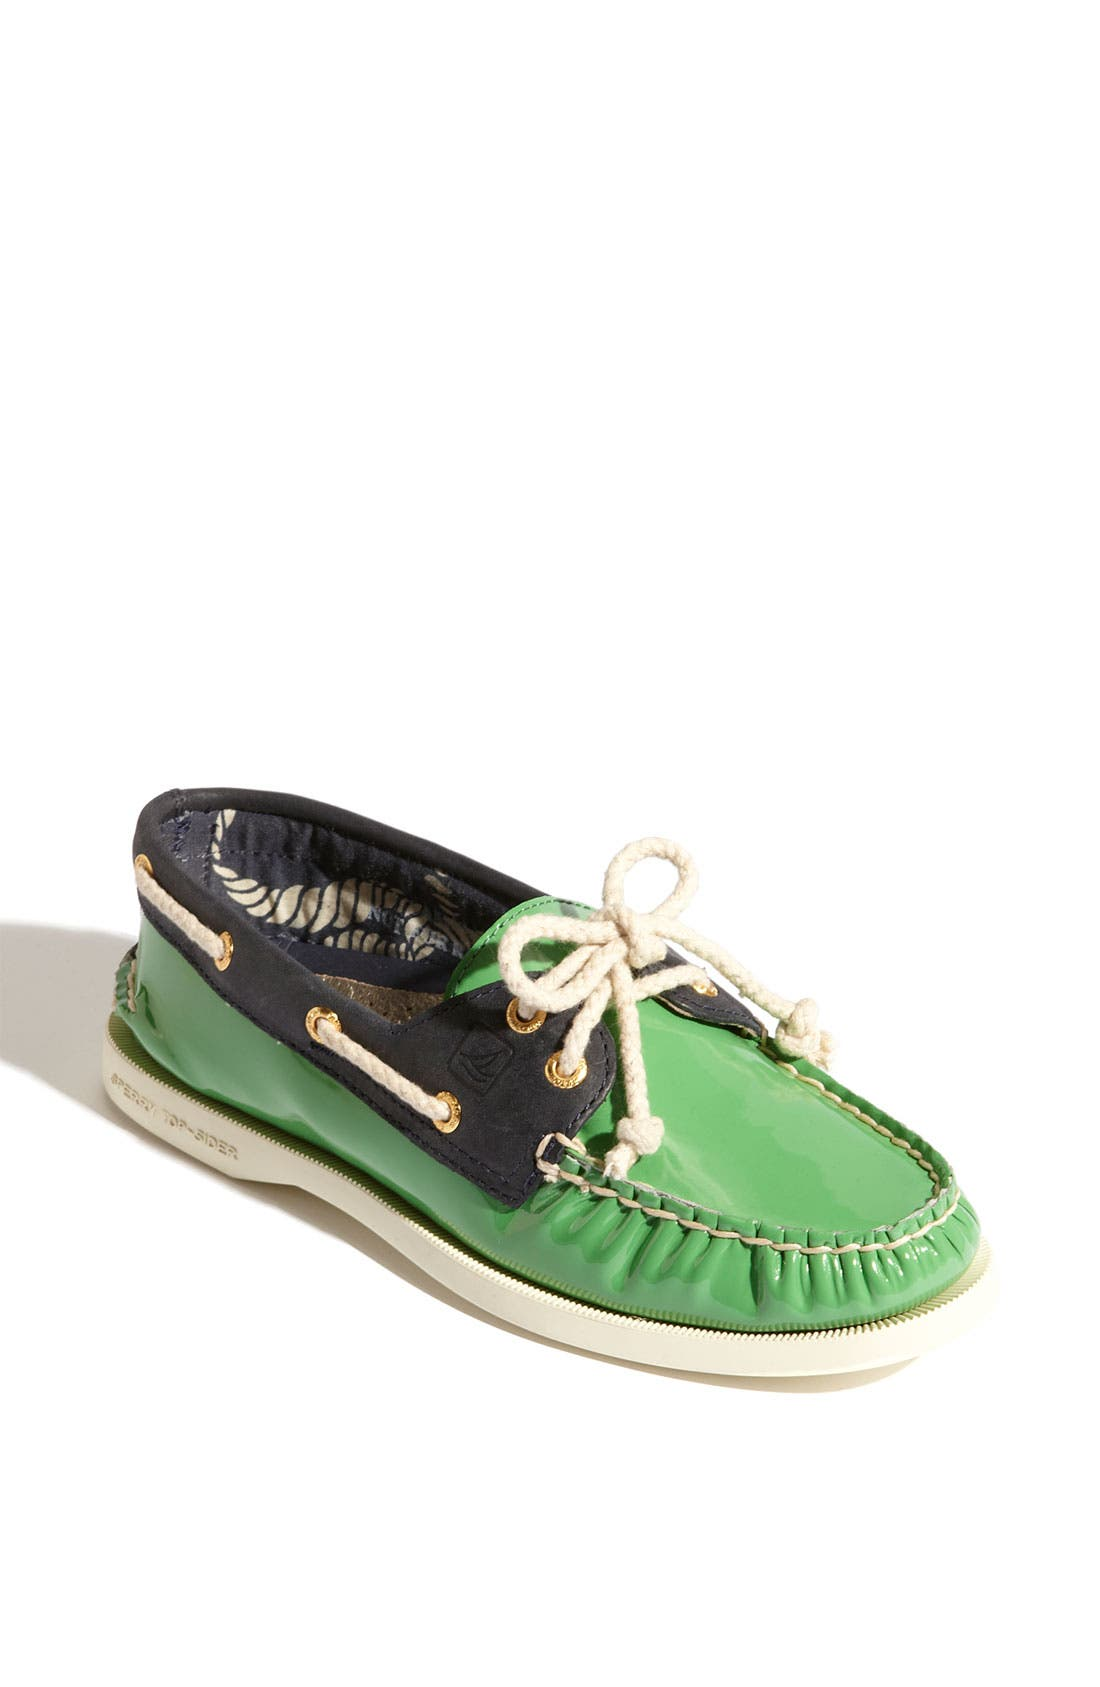 Alternate Image 1 Selected - Sperry Top-Sider® 'Authentic Original Patent' Boat Shoe